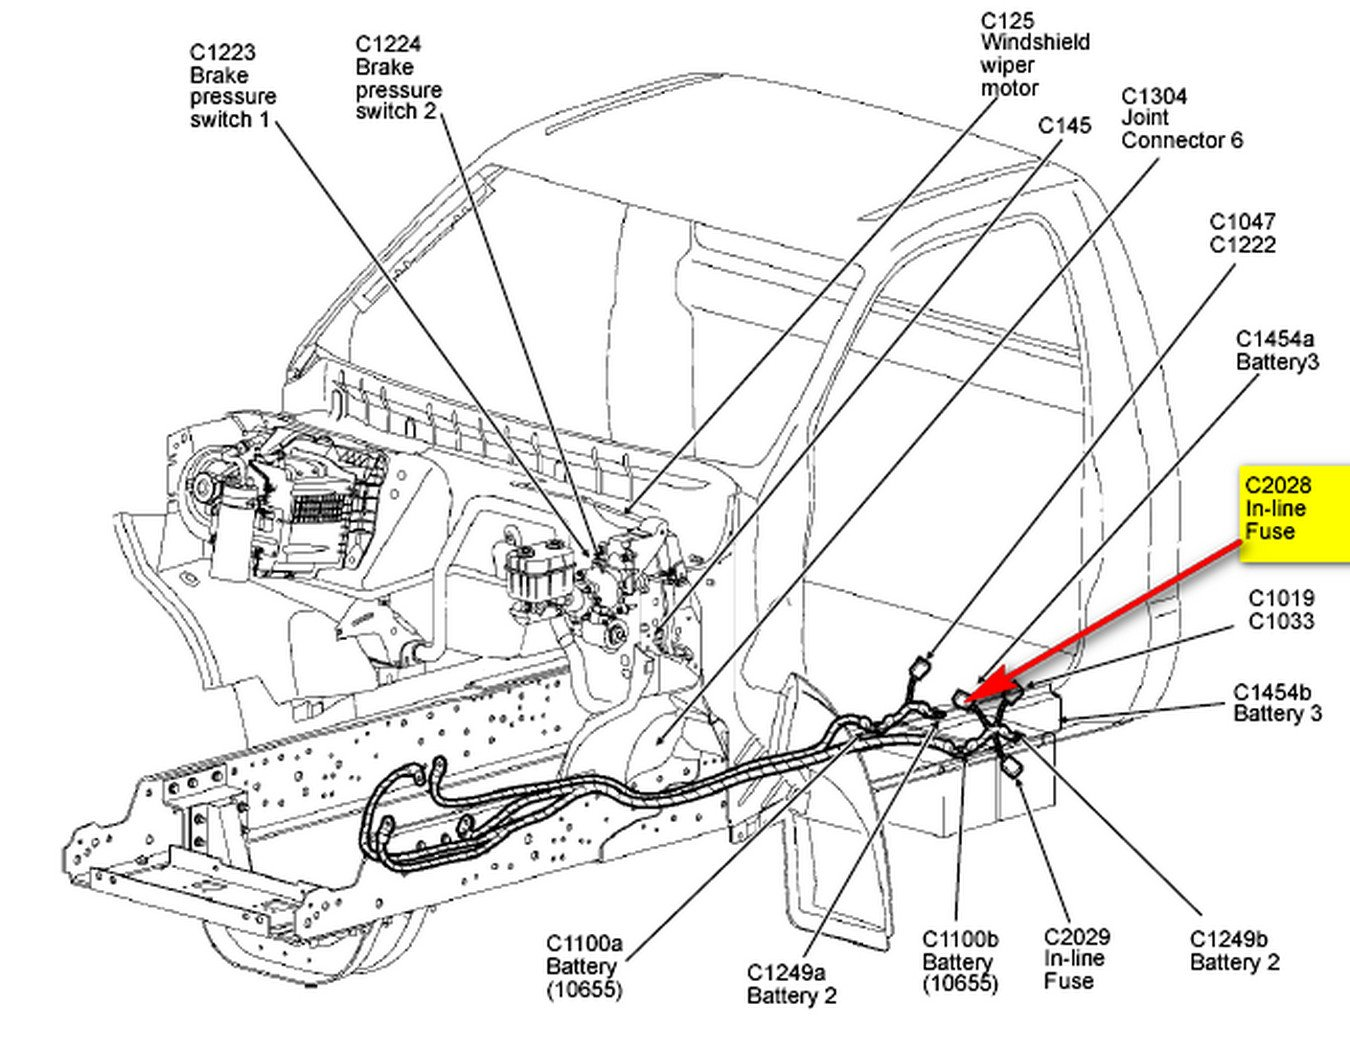 Stop Light Wiring Diagram 2010 F650 Reinvent Your 2005 F750 Fuse Box We Have A Ford 2008 Model With Cat Engine C7 No Rh Justanswer Com F 650 2004 Ranger